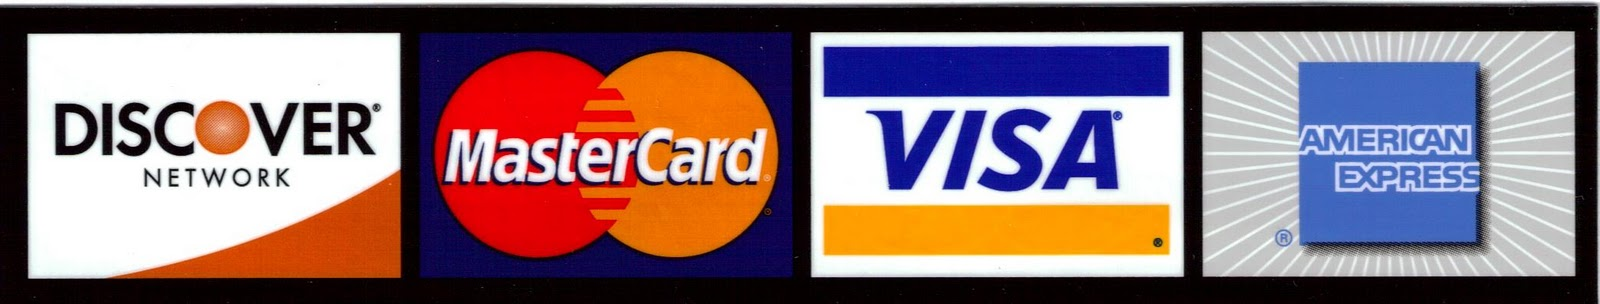 major credit cards accepted. Major credit cards are